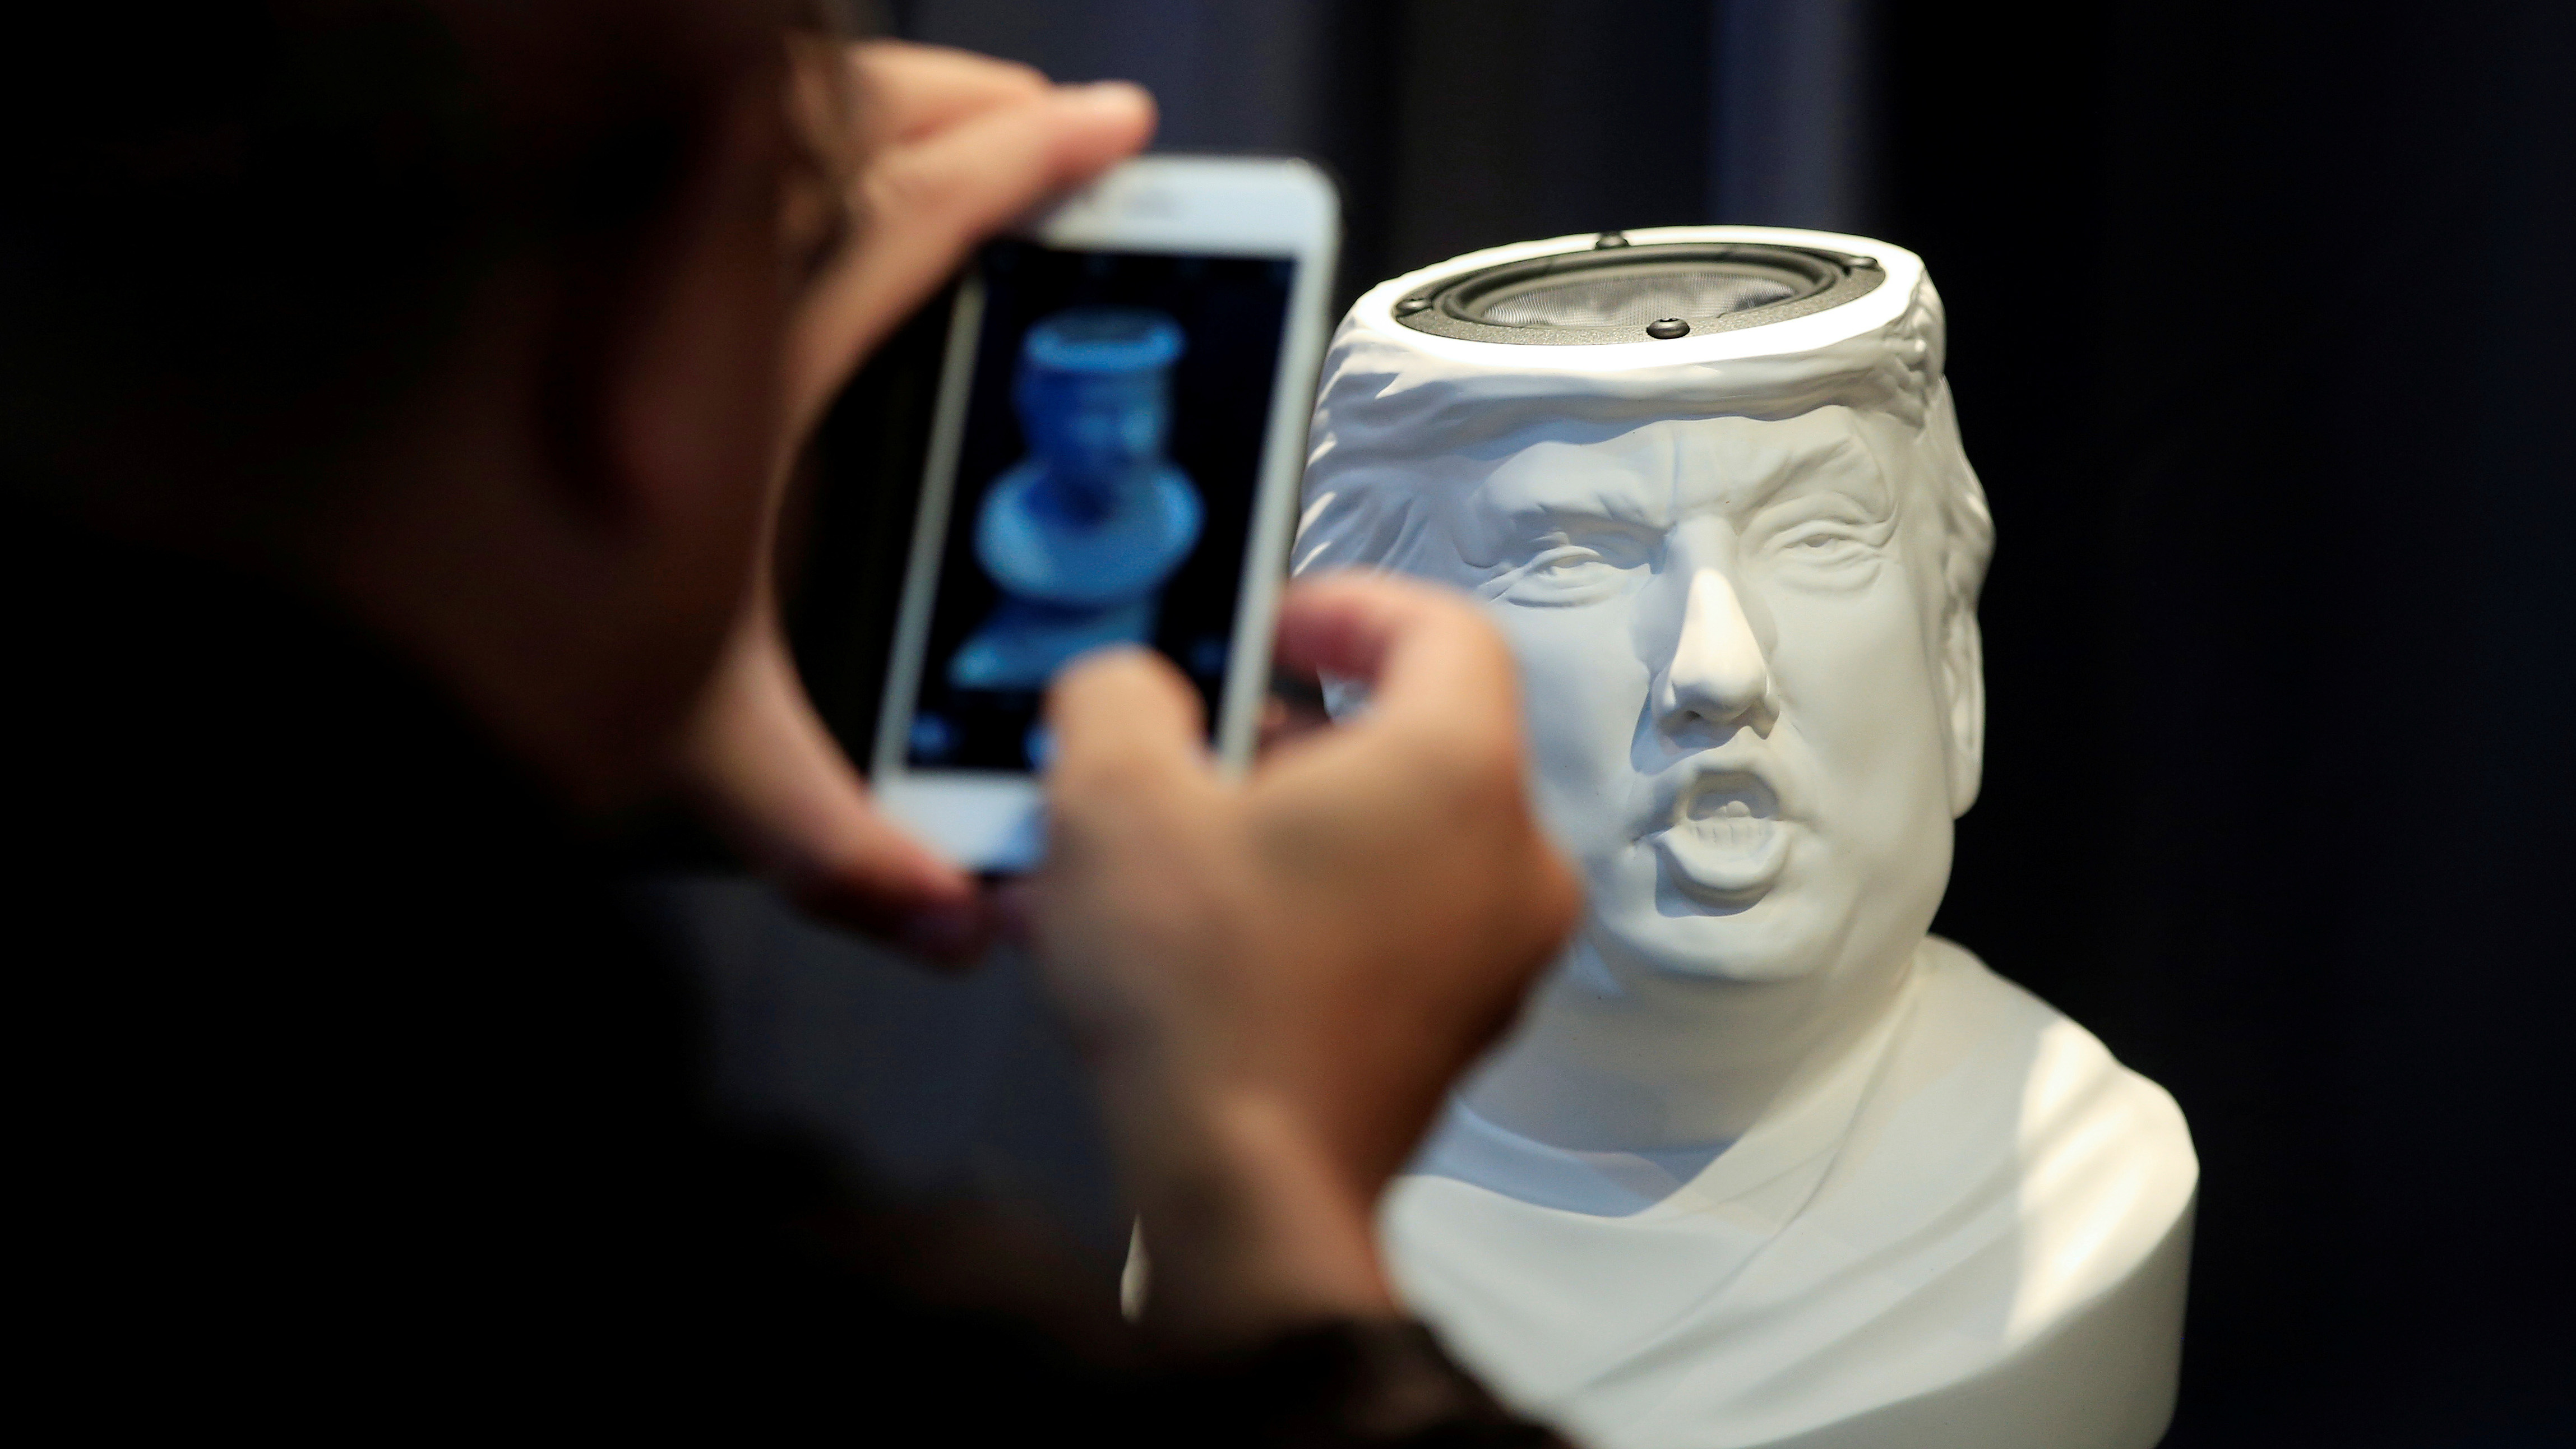 A man takes picture of a Sound Of Power speaker in the shape of a bust of Donald Trump is displayed at the CES (Consumer Electronics Show) Asia 2016 in Shanghai, China May 13, 2016. The speaker is designed by Petro Wodkins. REUTERS/Aly Song TPX IMAGES OF THE DAY - RTX2E4SG